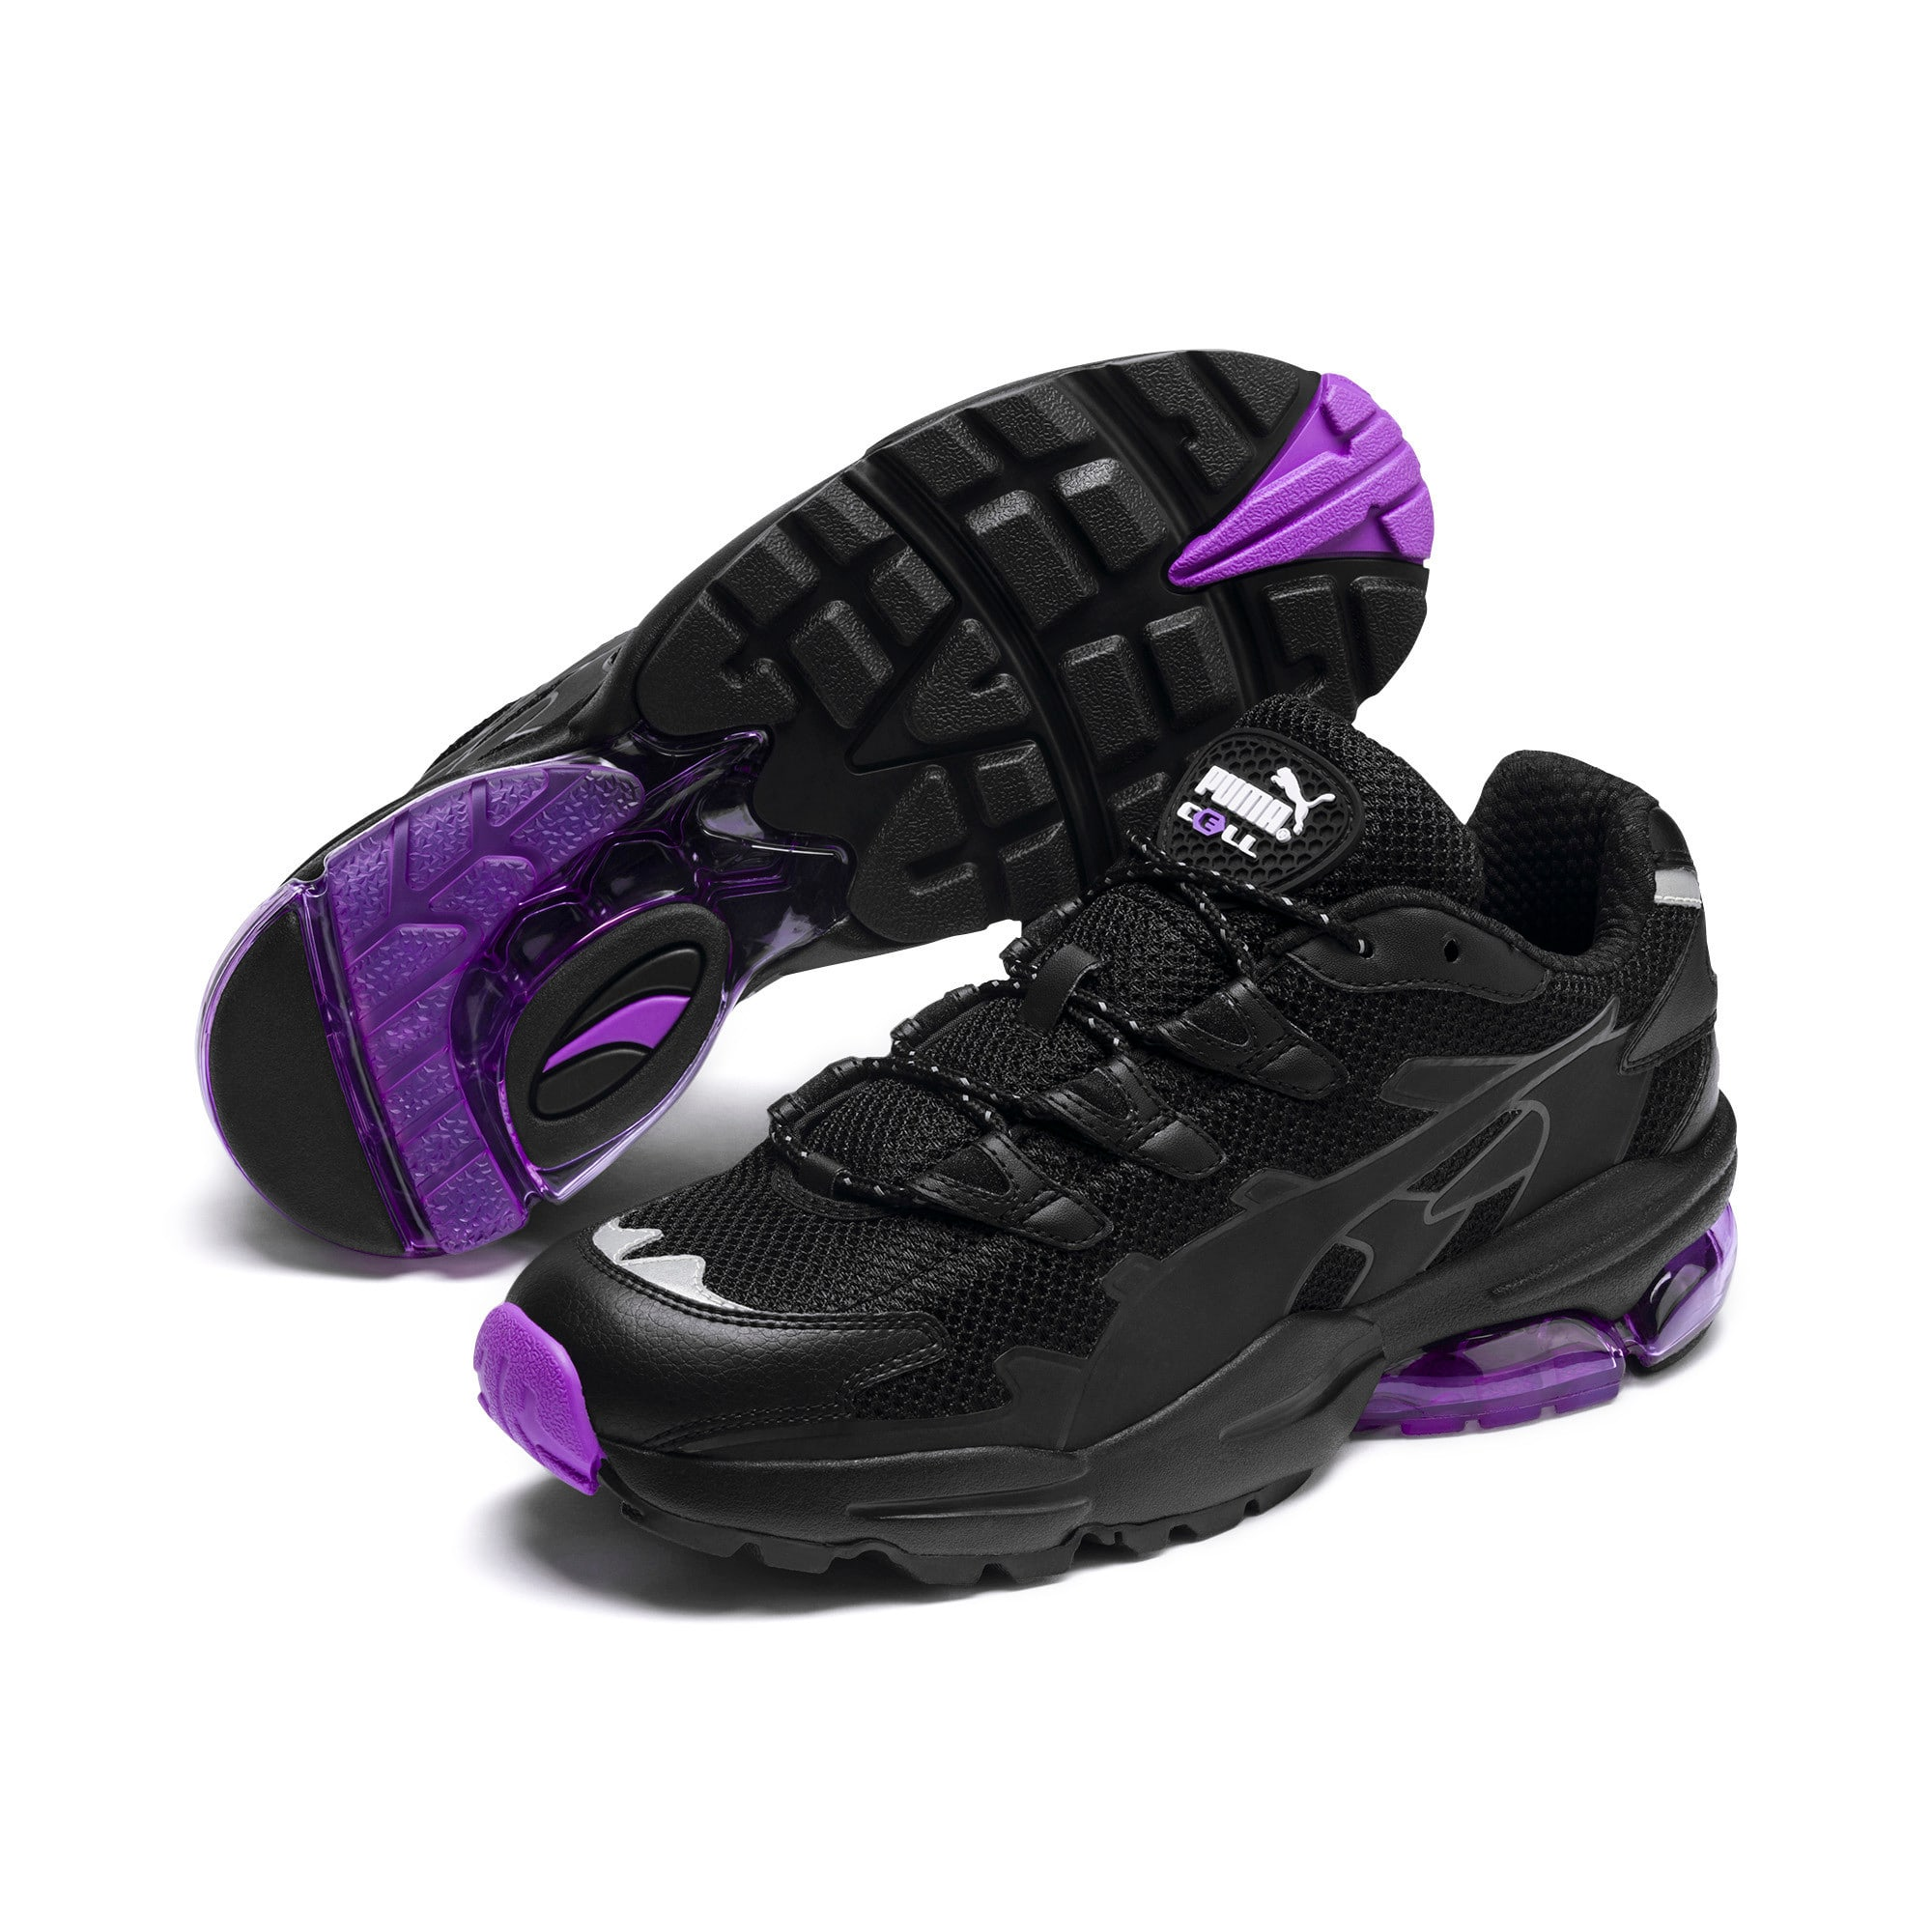 Thumbnail 3 of CELL Alien Kotto sportschoenen, Puma Black-Puma Black, medium